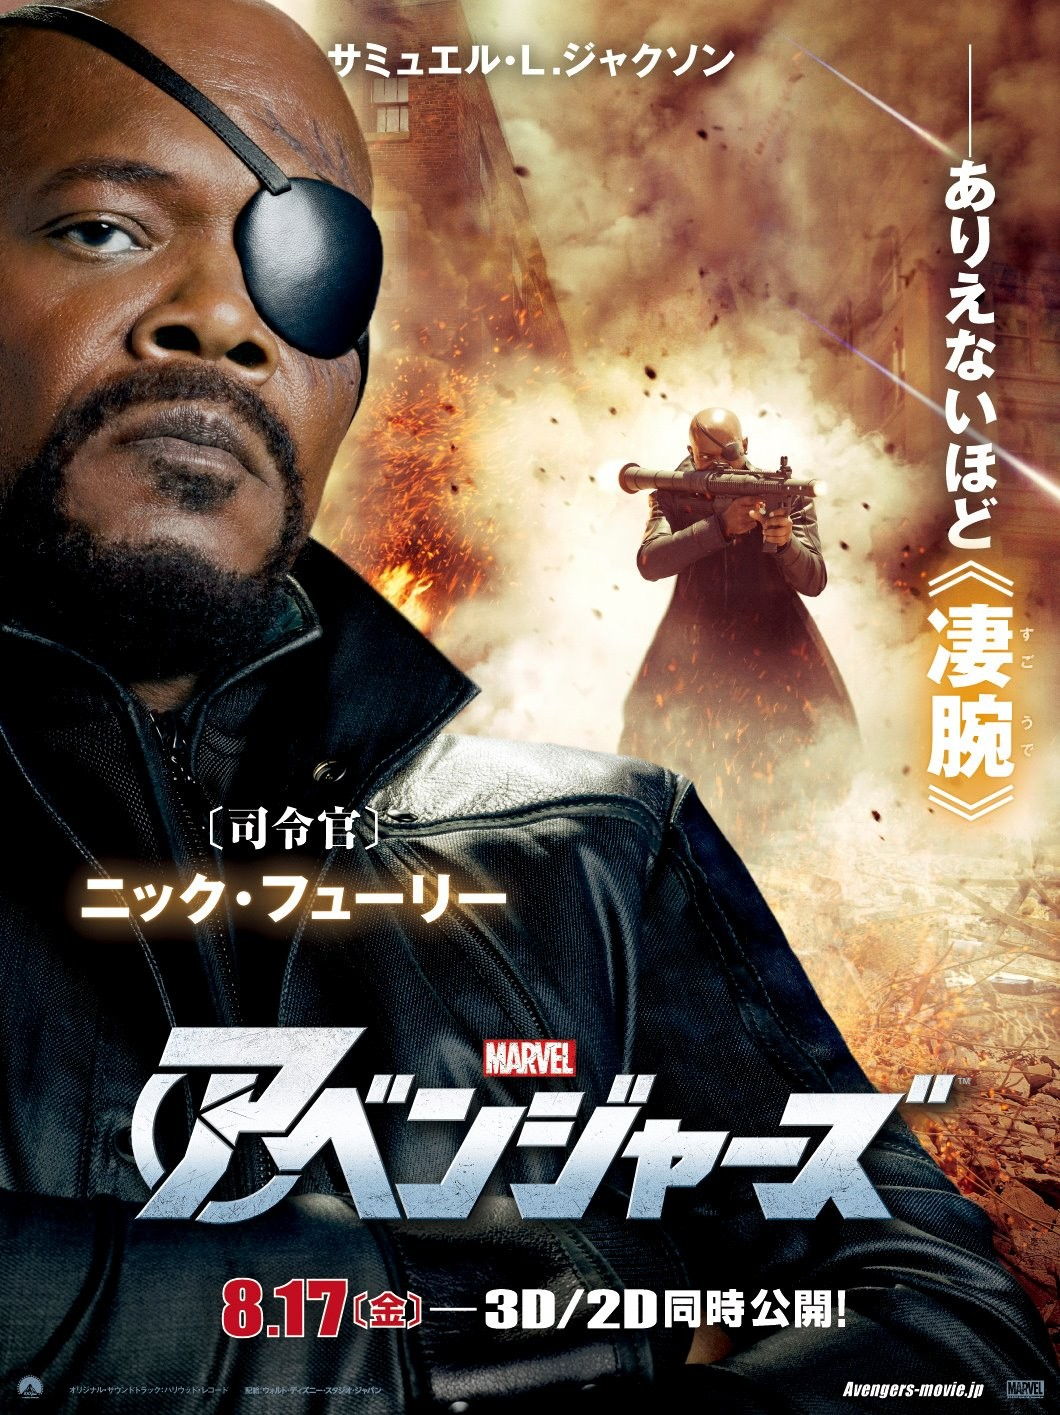 The Avengers - Nick Fury poster - Japan